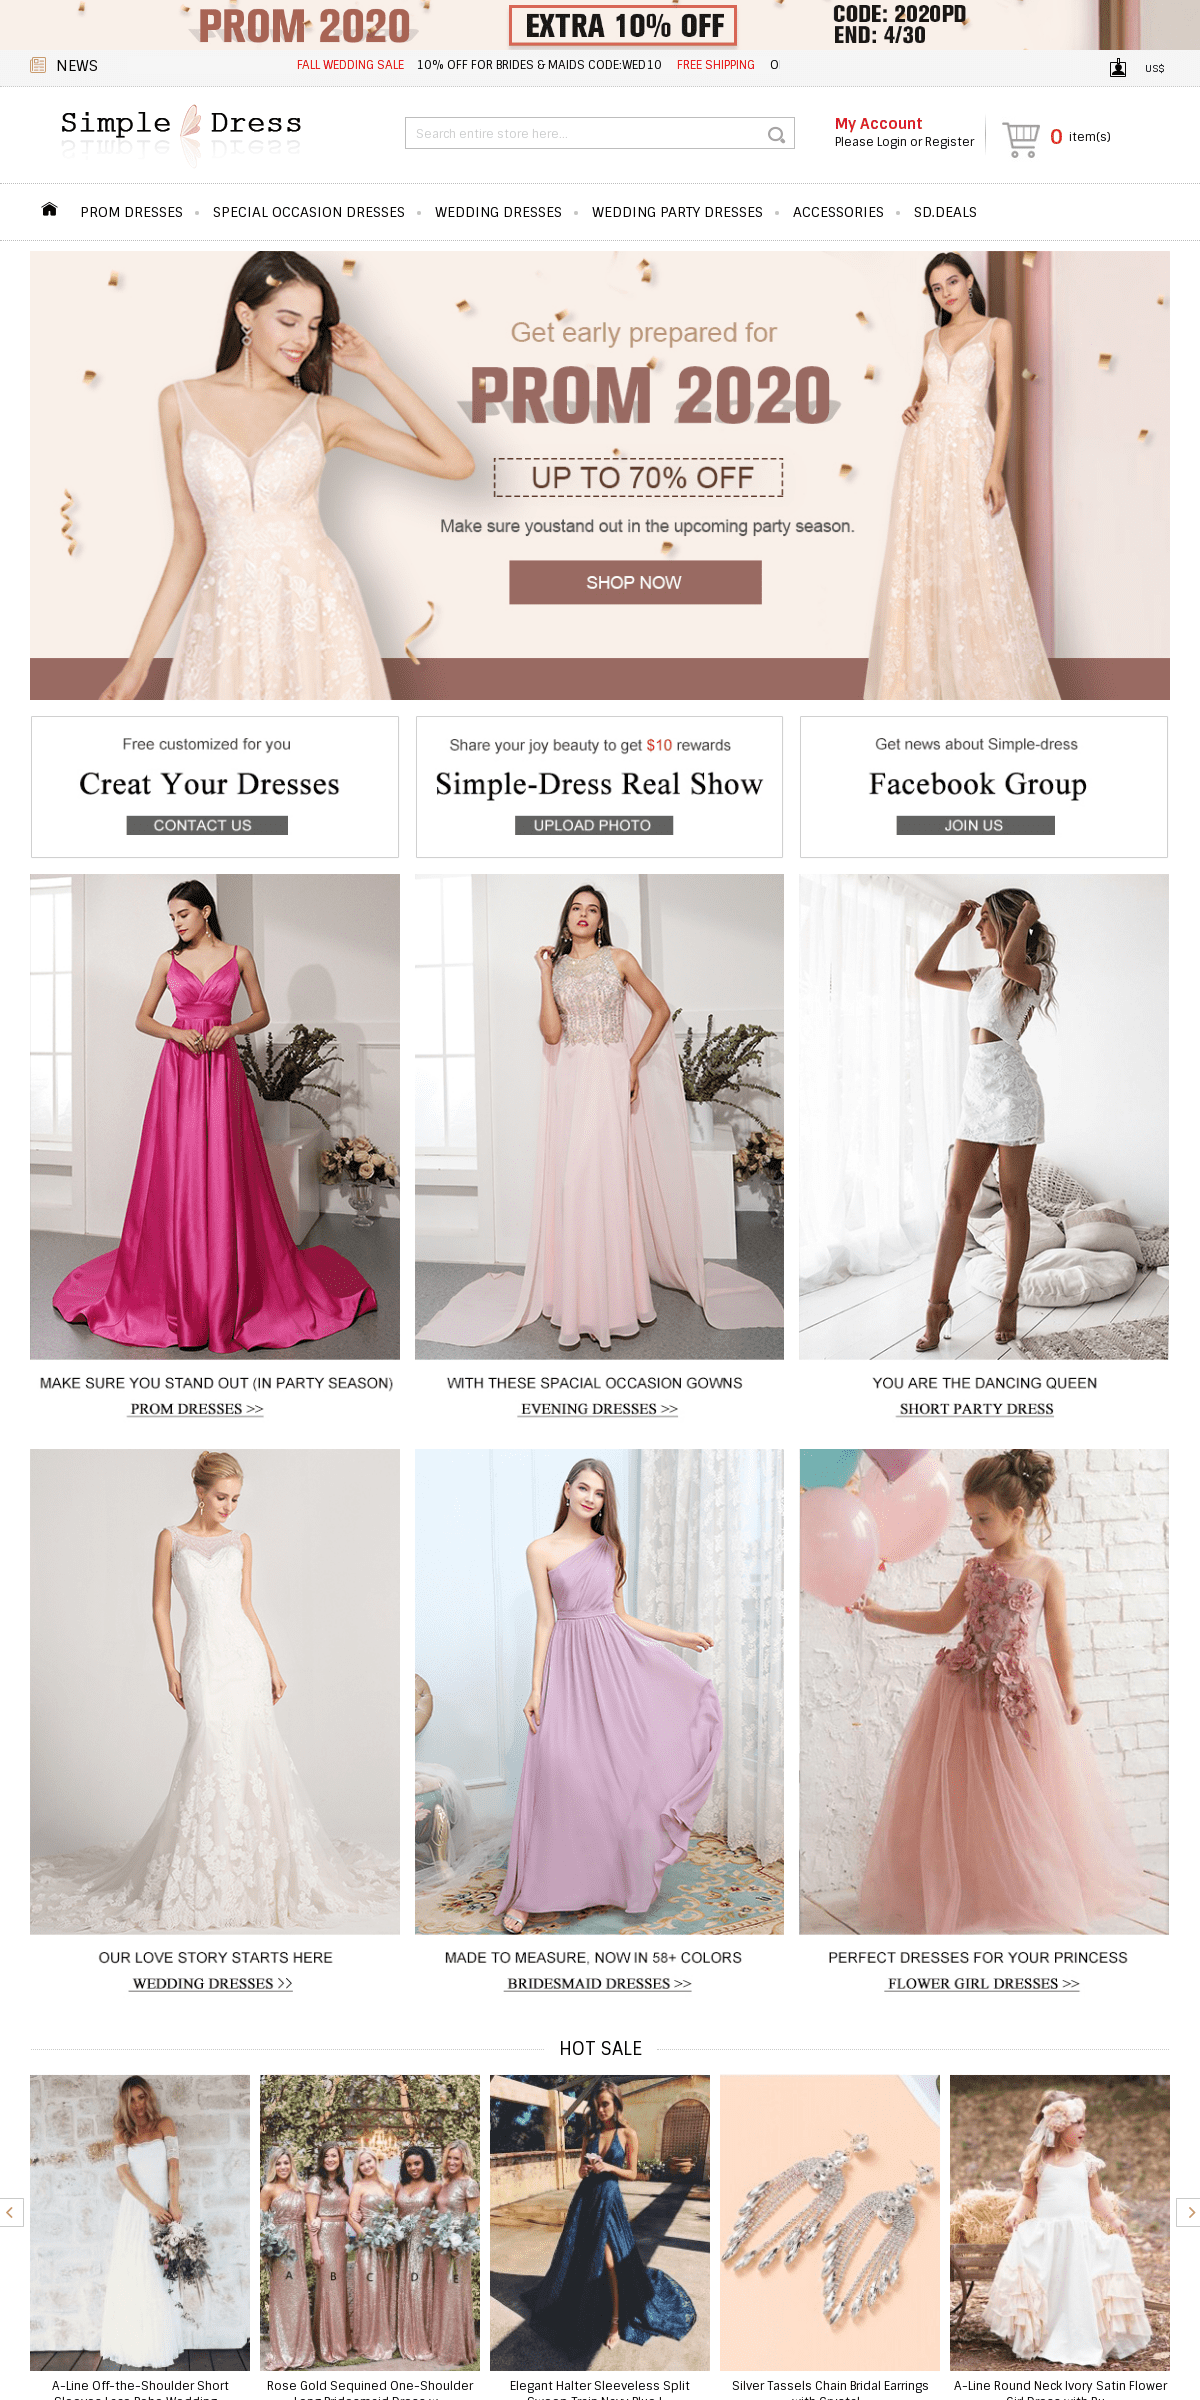 Prom Dresses, Evening Dresses, Bridal Gowns & Accessories for Hot Sale - Simple-dress.com